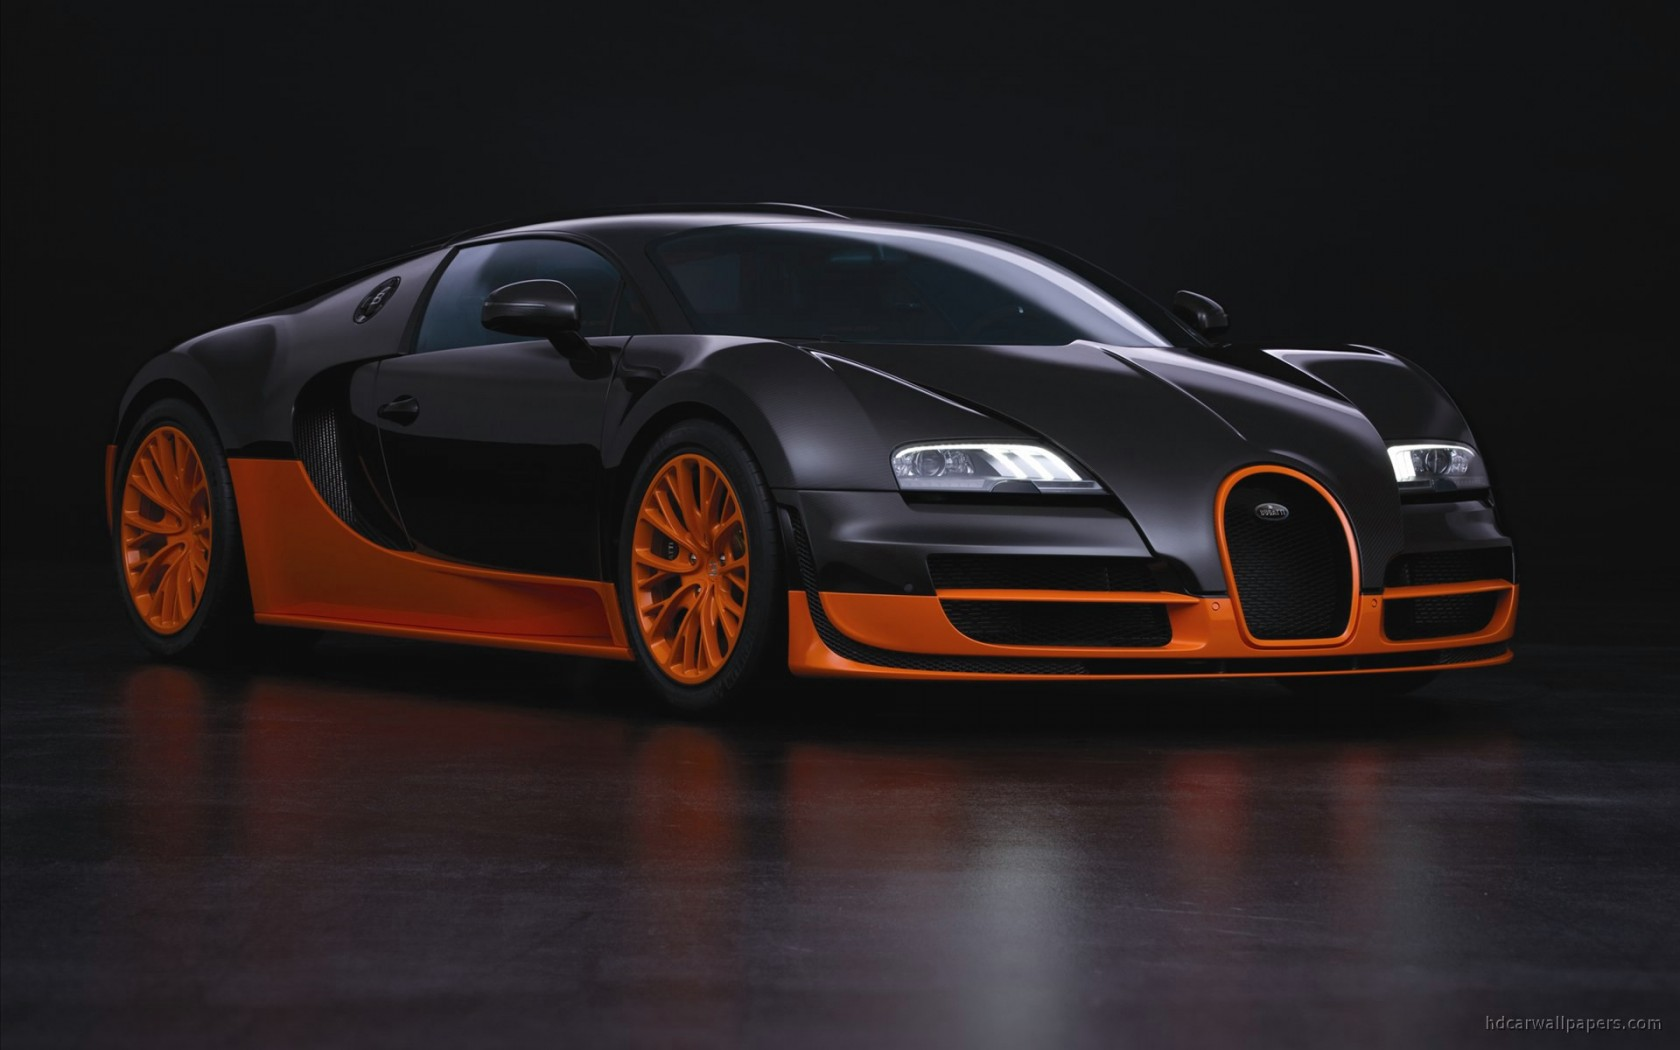 bugatti veyron super sports car wallpaper in 1680x1050 resolution. Black Bedroom Furniture Sets. Home Design Ideas